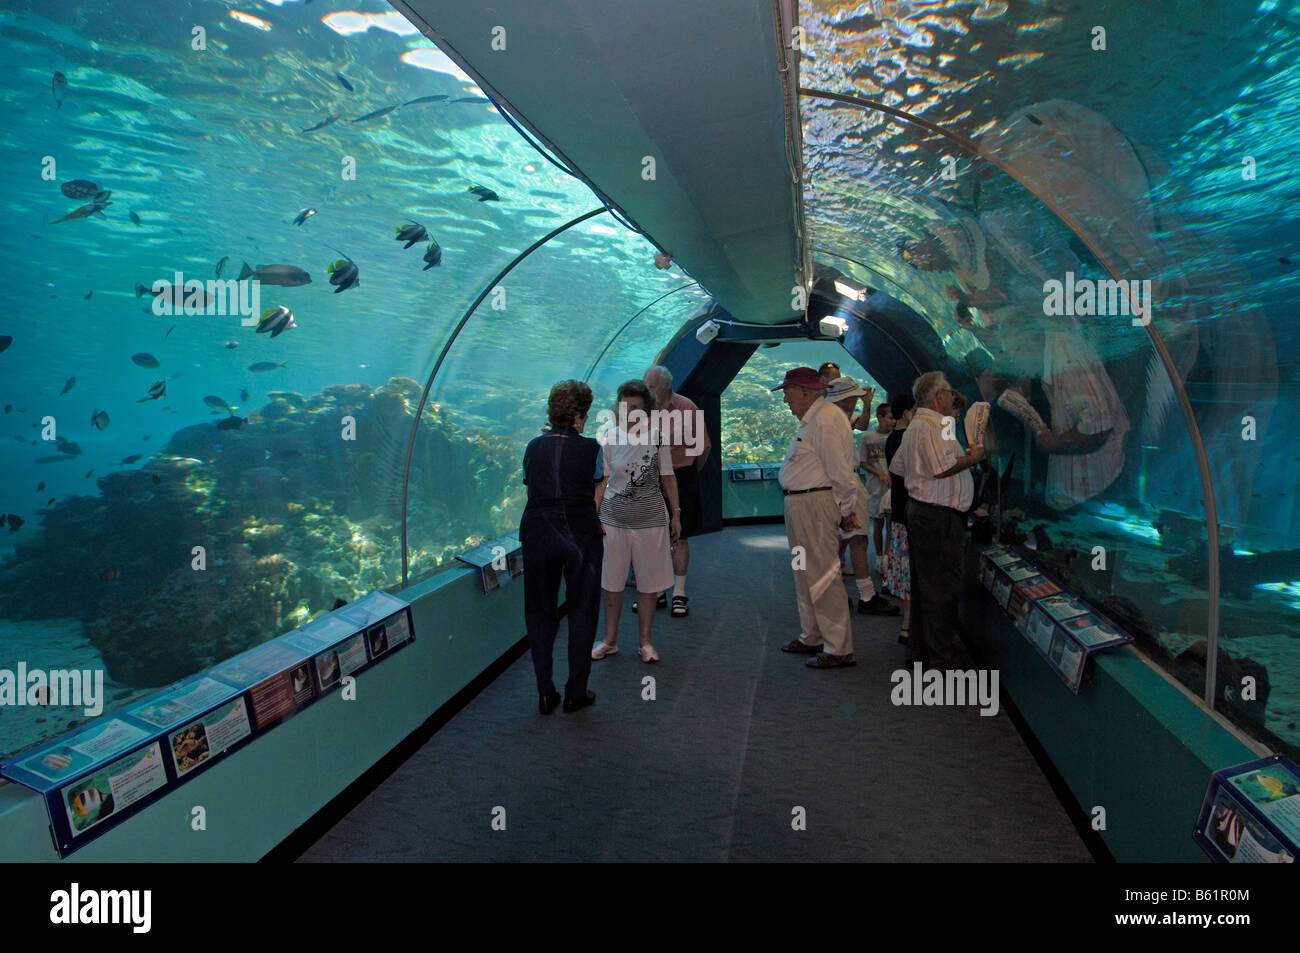 Tourists in the tunnel of the Reefworld HQ, the largest reef aquarium in the world, Townsville, Australia - Stock Image